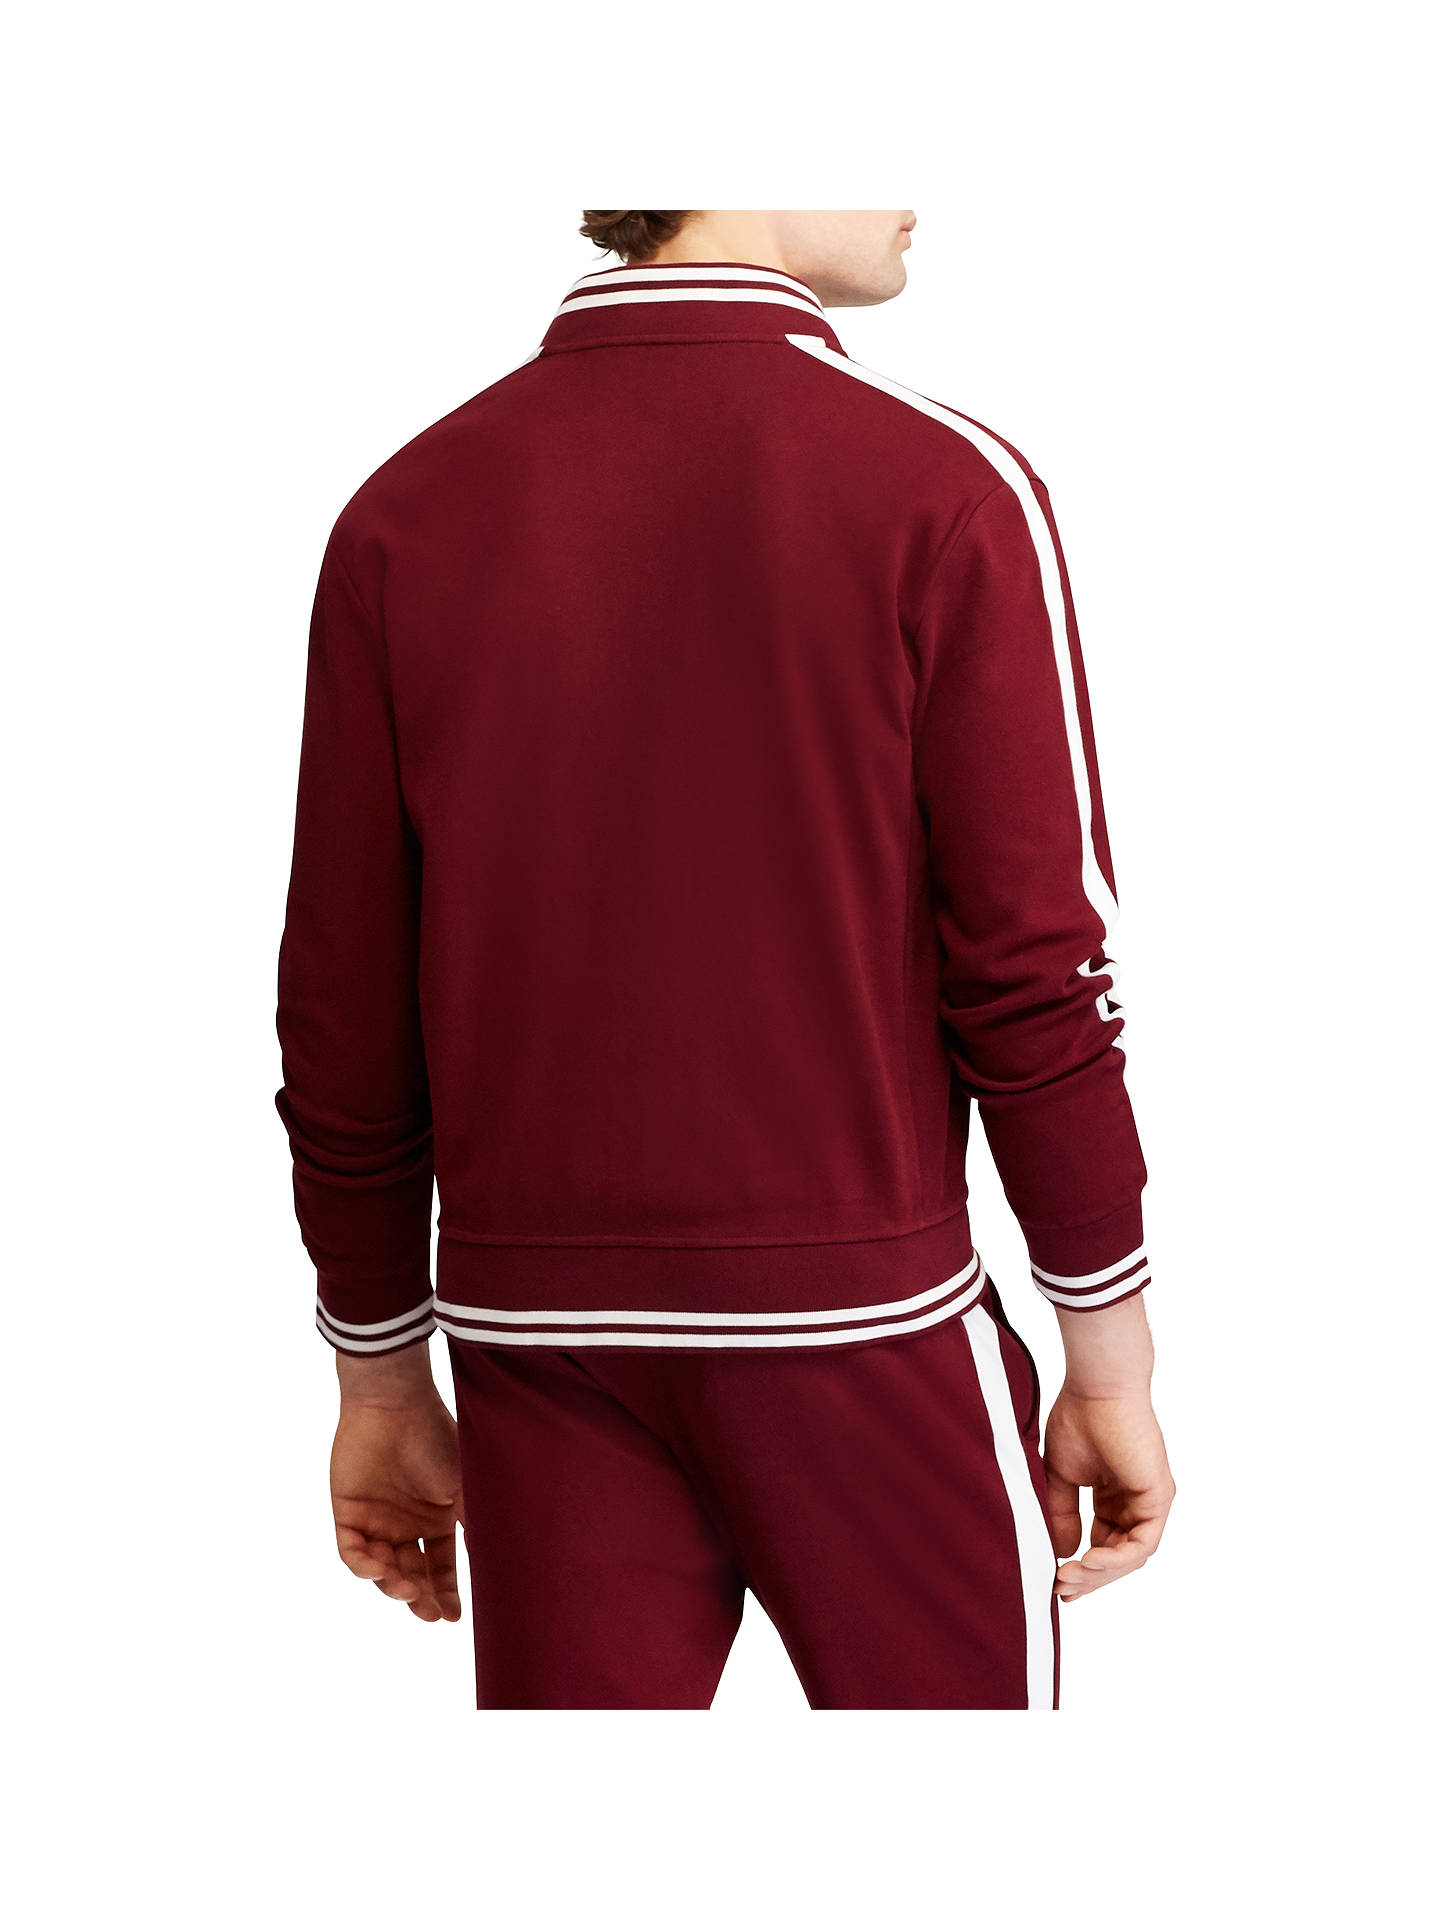 BuyPolo Ralph Lauren Long Sleeve Baseball Jacket, Classic Wine, M Online at johnlewis.com